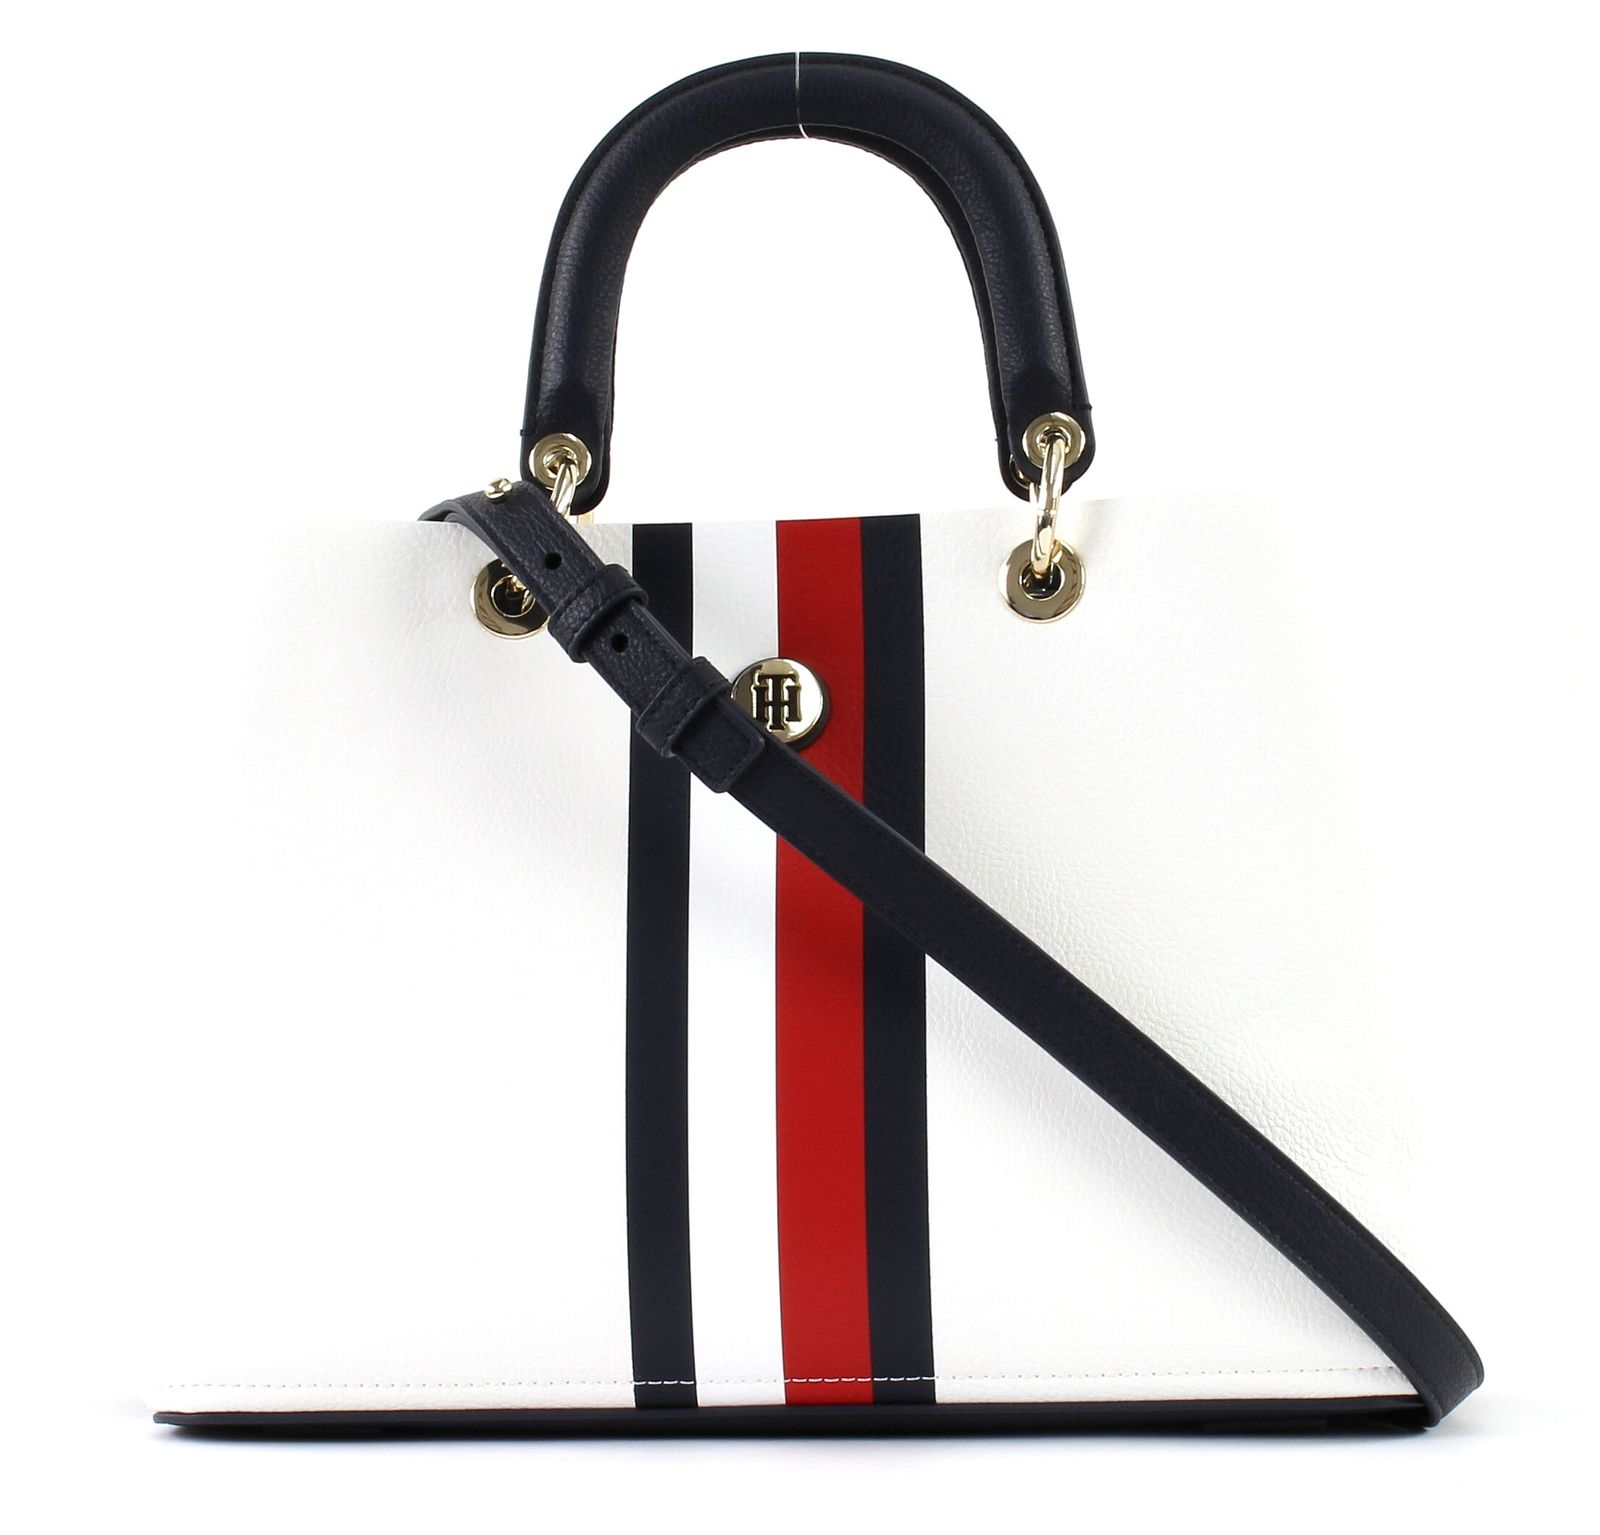 4f147afe45 ... CloseTOMMY HILFIGER TH Core Satchel Corporate Mix / 159,90 €*Tap To  CloseOnly possible if you pay by Paypal, Amazon Payments, Credit Card, ...